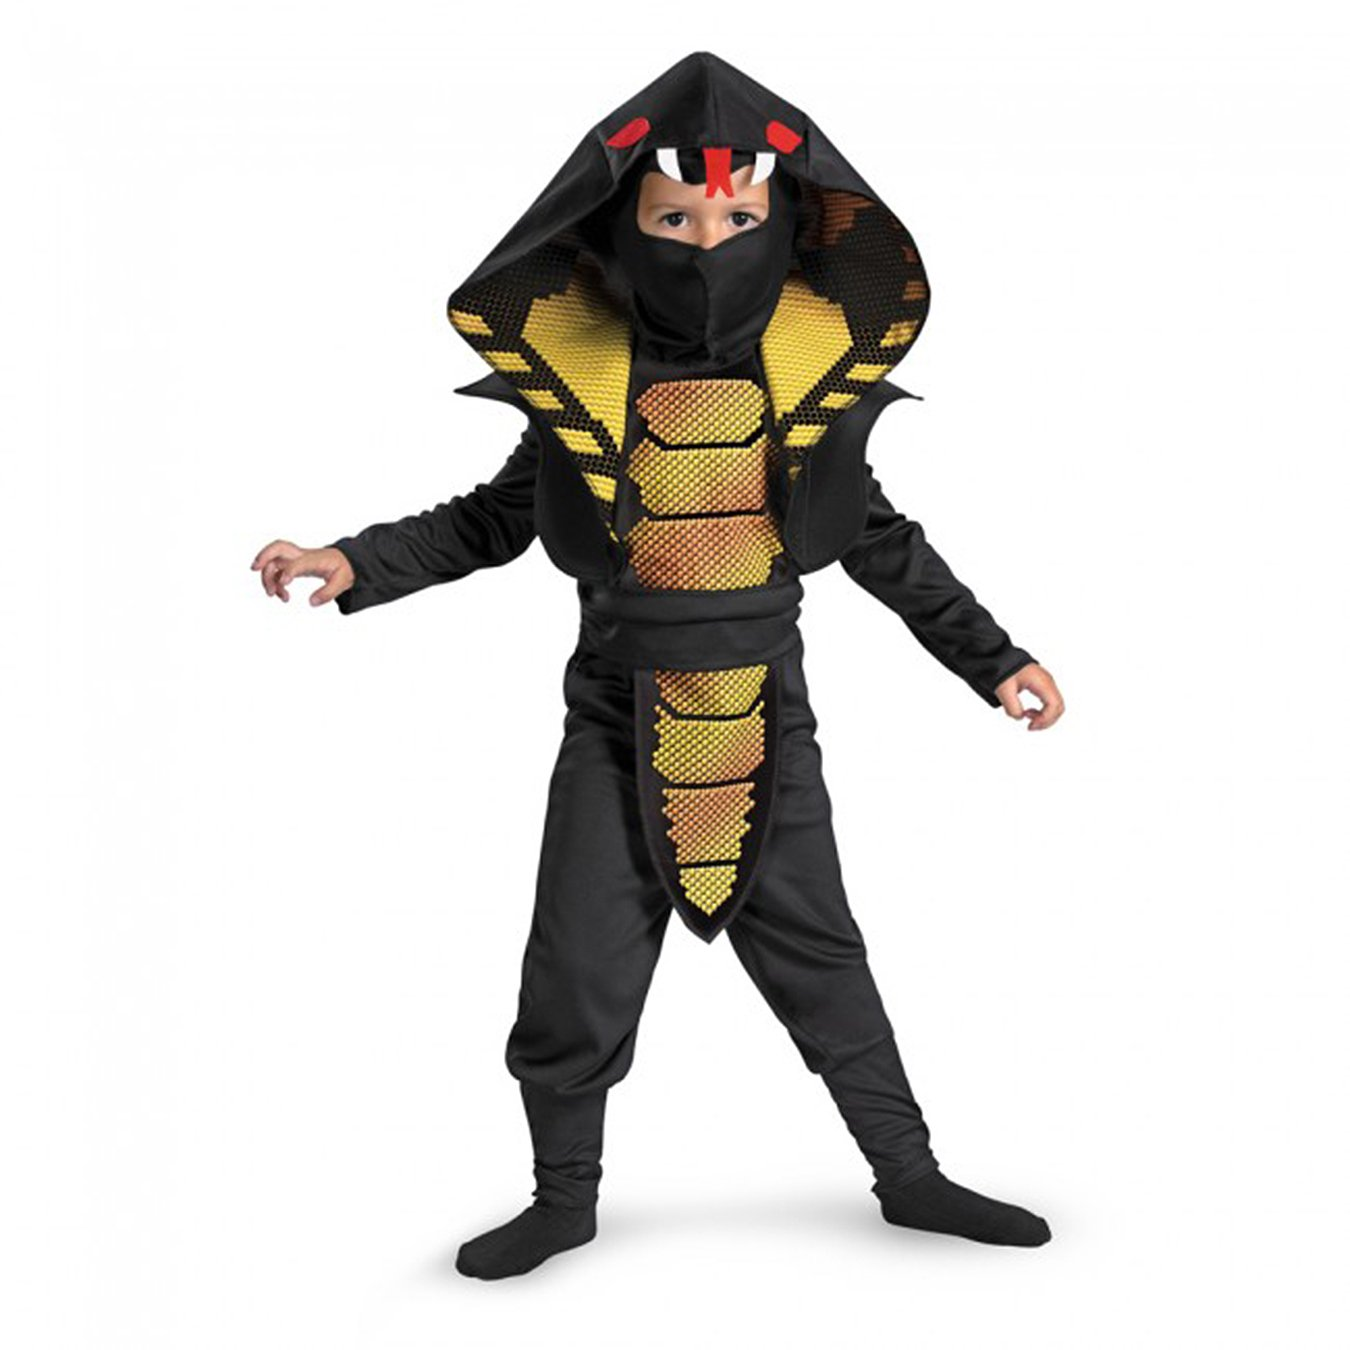 sc 1 st  Amazon.com & Amazon.com: Cobra Ninja Toddler Costume 3T-4T: Toys u0026 Games